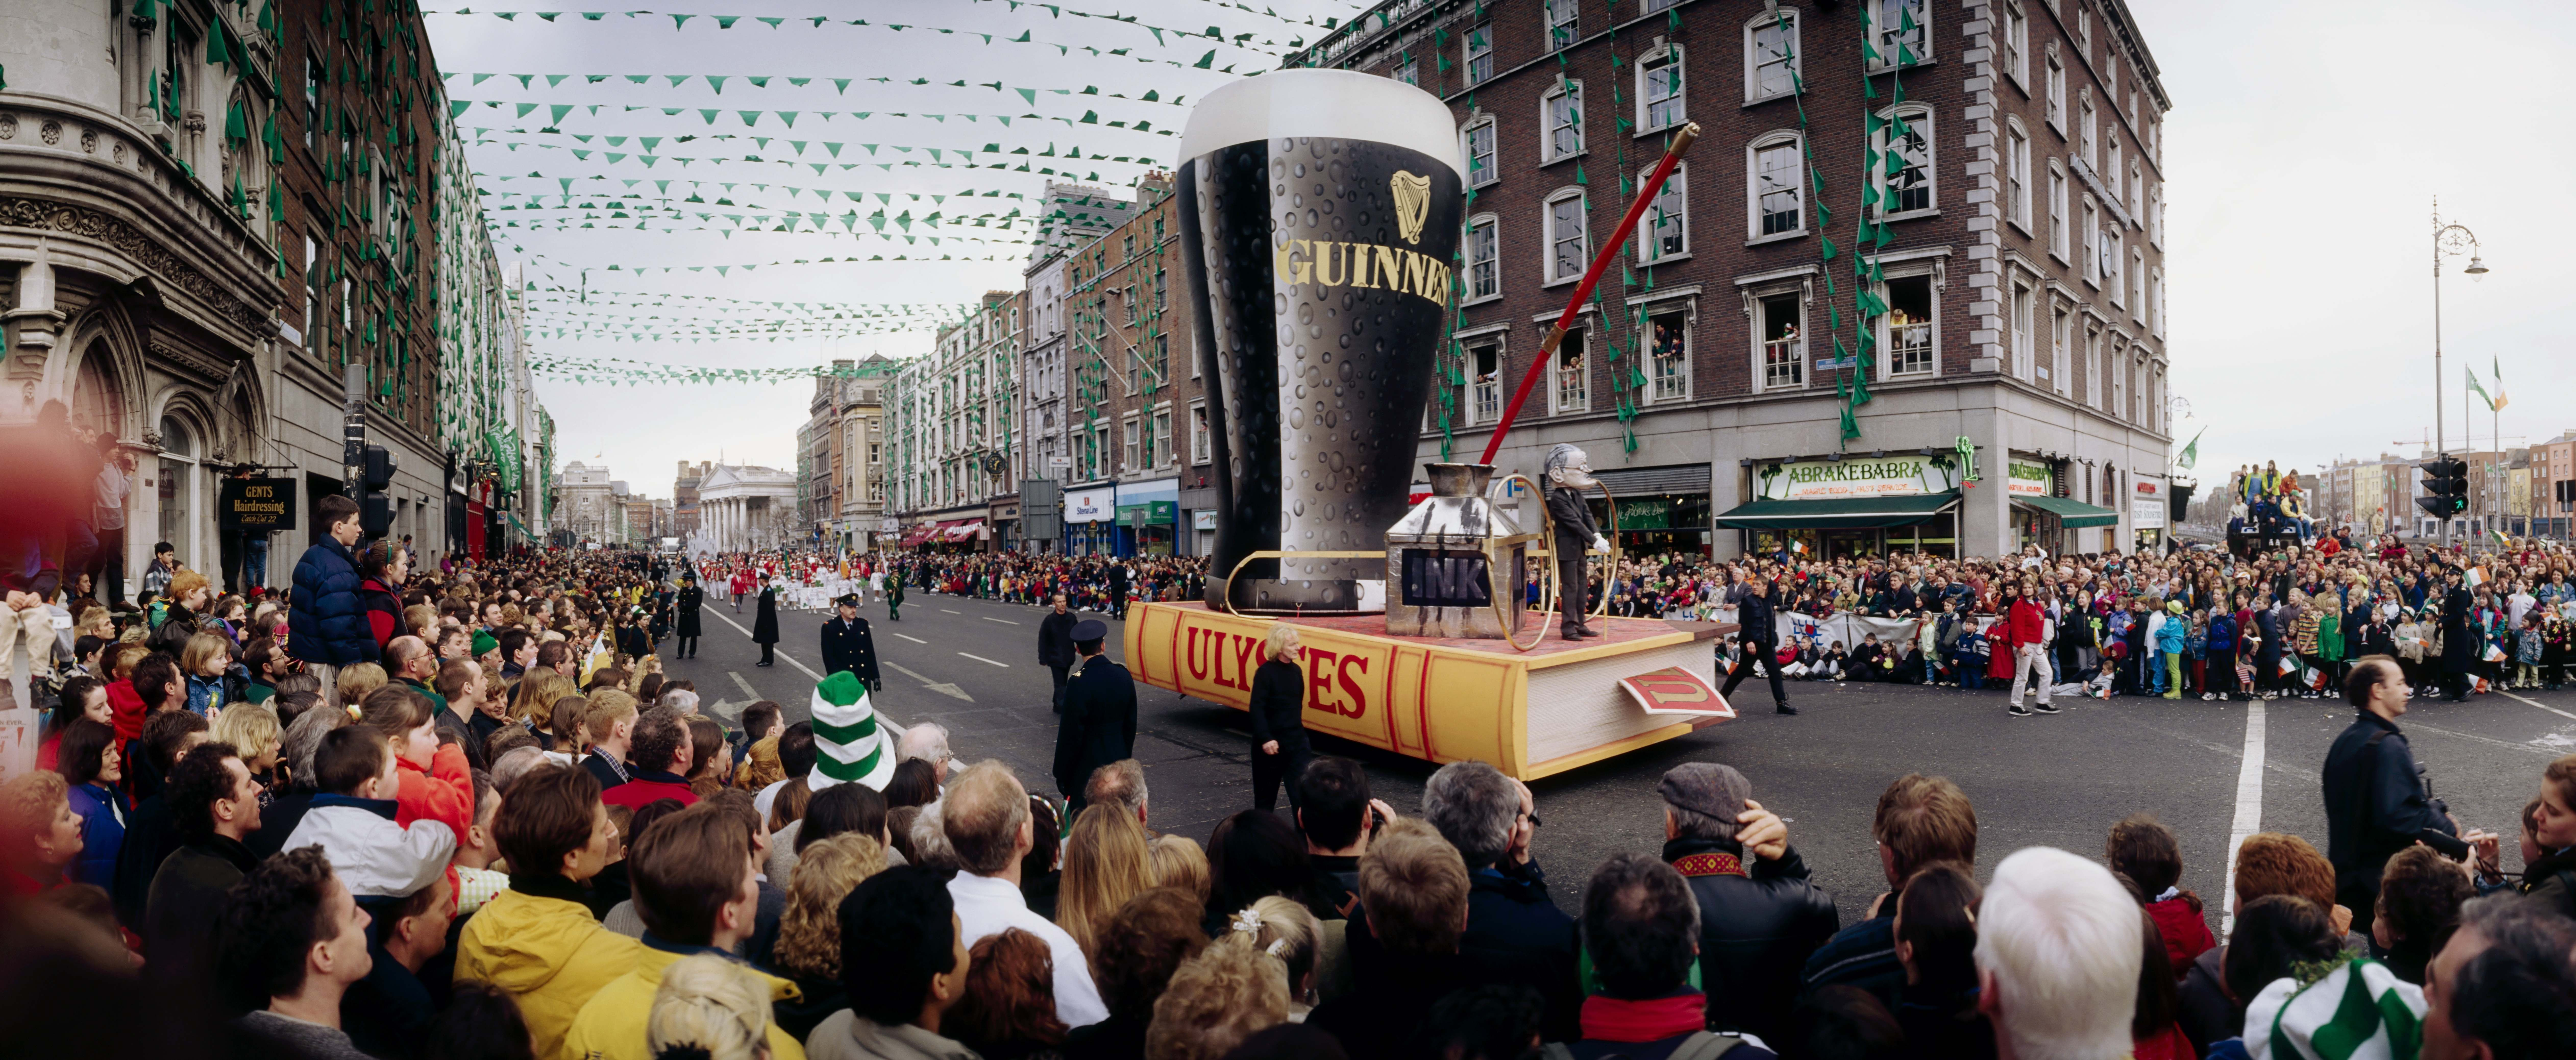 Is St. Patrick's Day celebrated in Ireland?